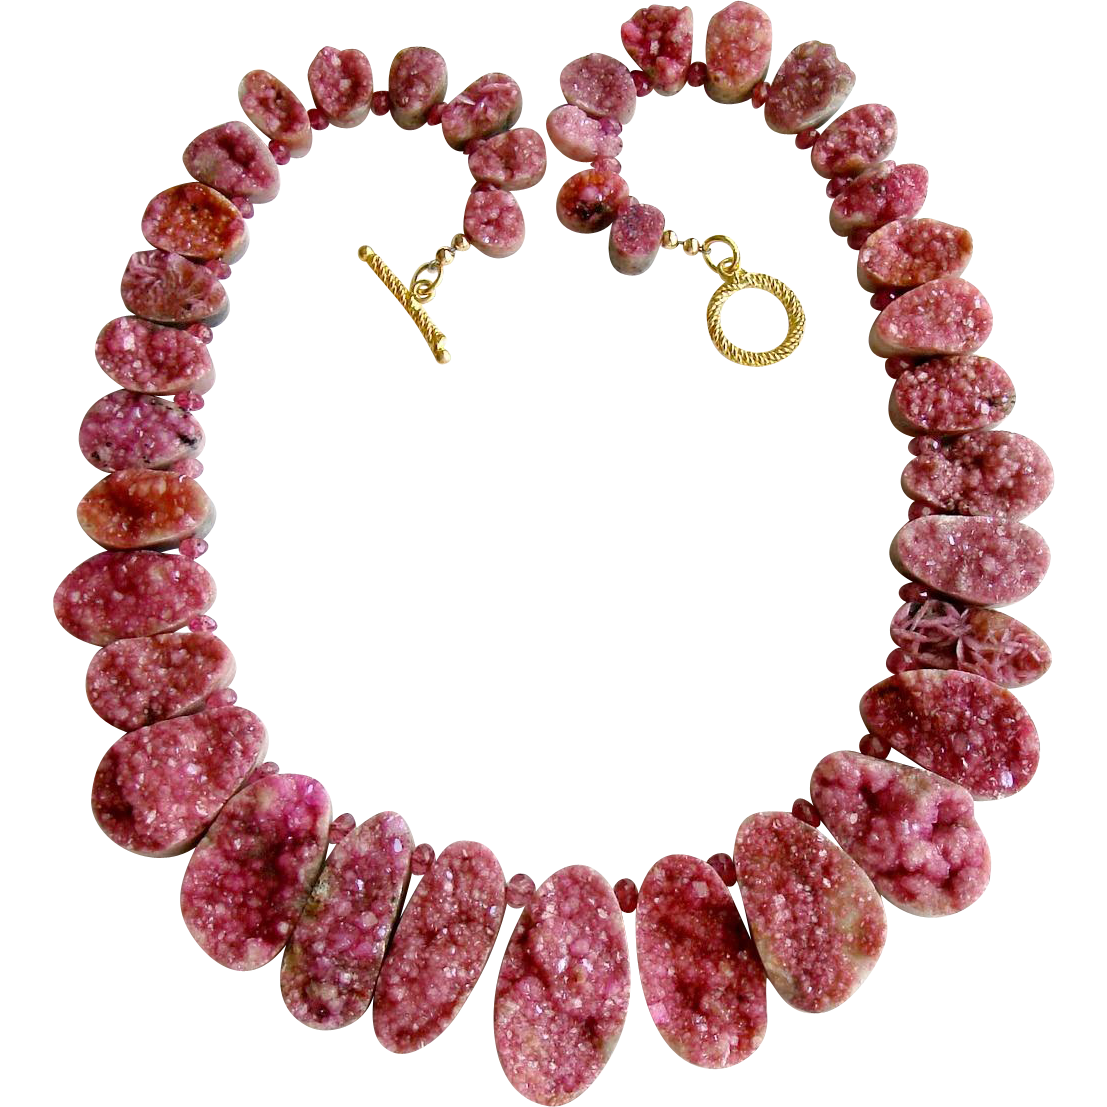 Pink Cobalto Calcite Druzy Necklace - Cherie Necklace